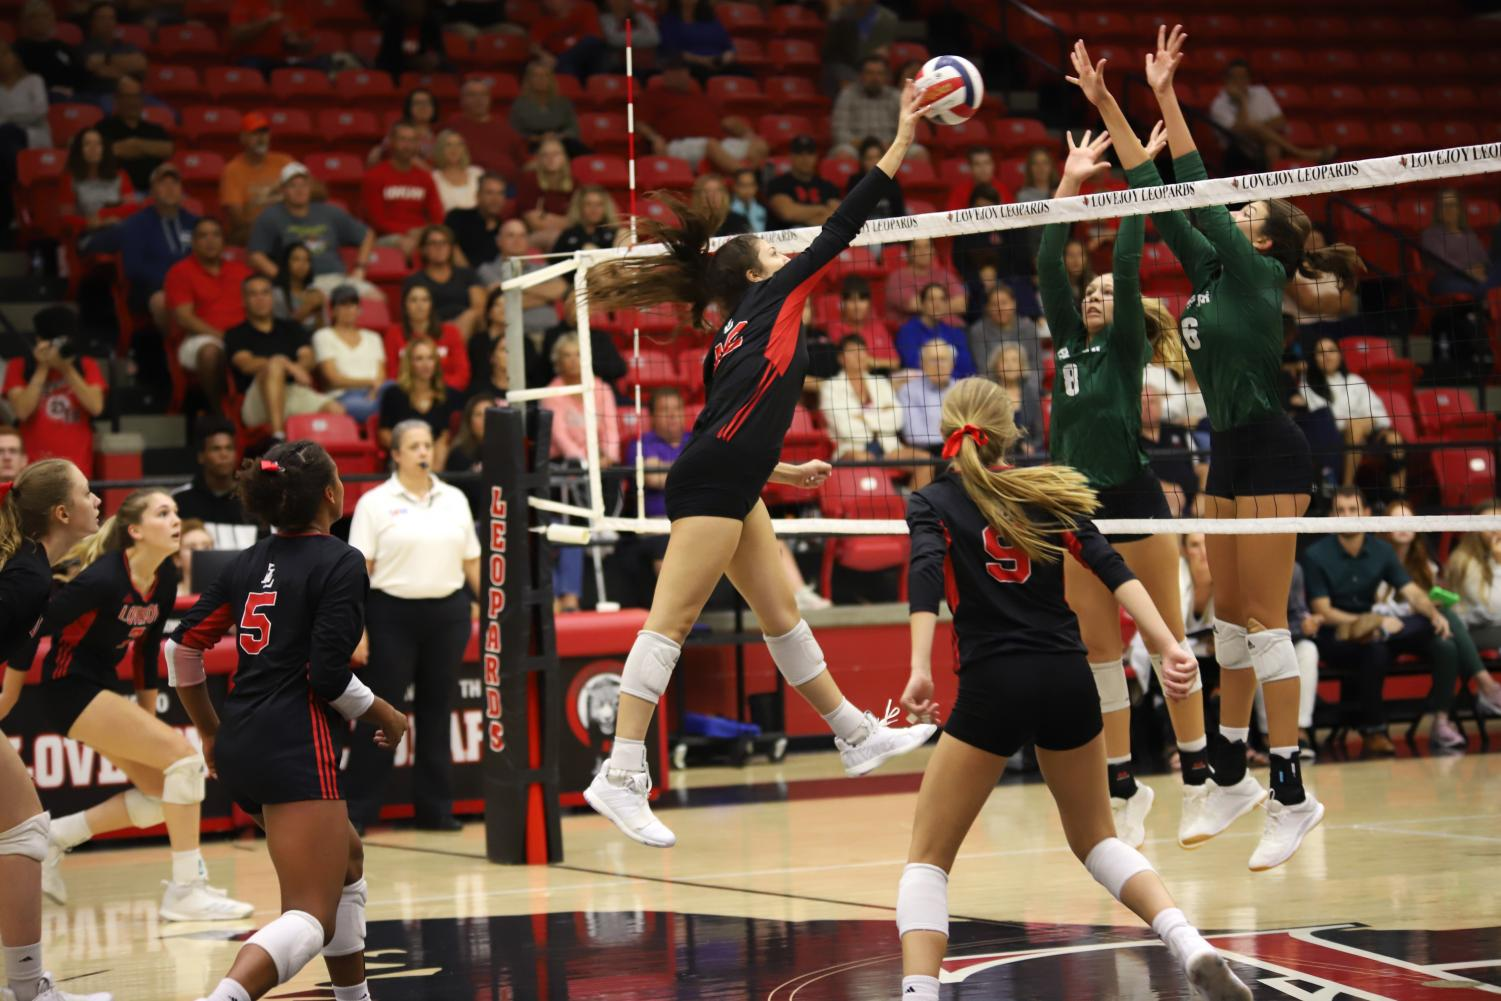 Freshman+Hannah+Gonzalez+hits+the+ball+from+the+middle+hitter+position.+Gonzalez+played+her+first+non-conference+home+game+on+the+court+in+a+Lovejoy+uniform+against+Prosper.